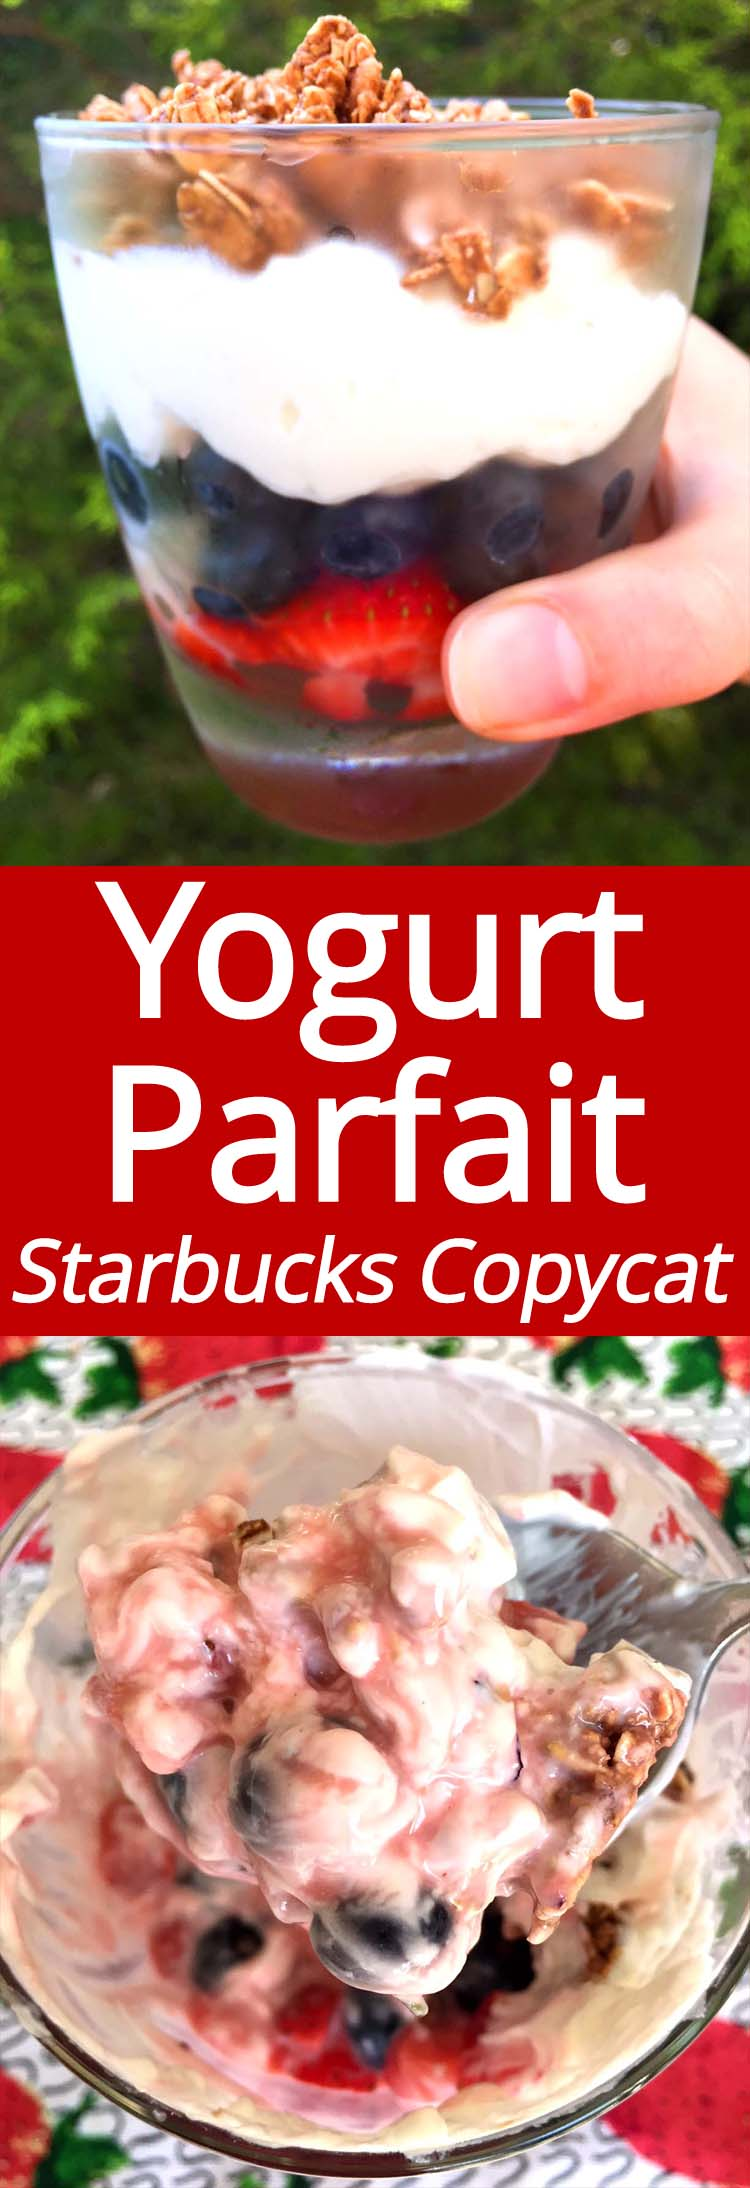 This fruit and yogurt parfait is amazing! Now I don't have to go to Starbucks to get it for breakfast! It's made with Greek yogurt and fresh blueberries and strawberries, yum! So much cheaper and healthier then Starbucks!